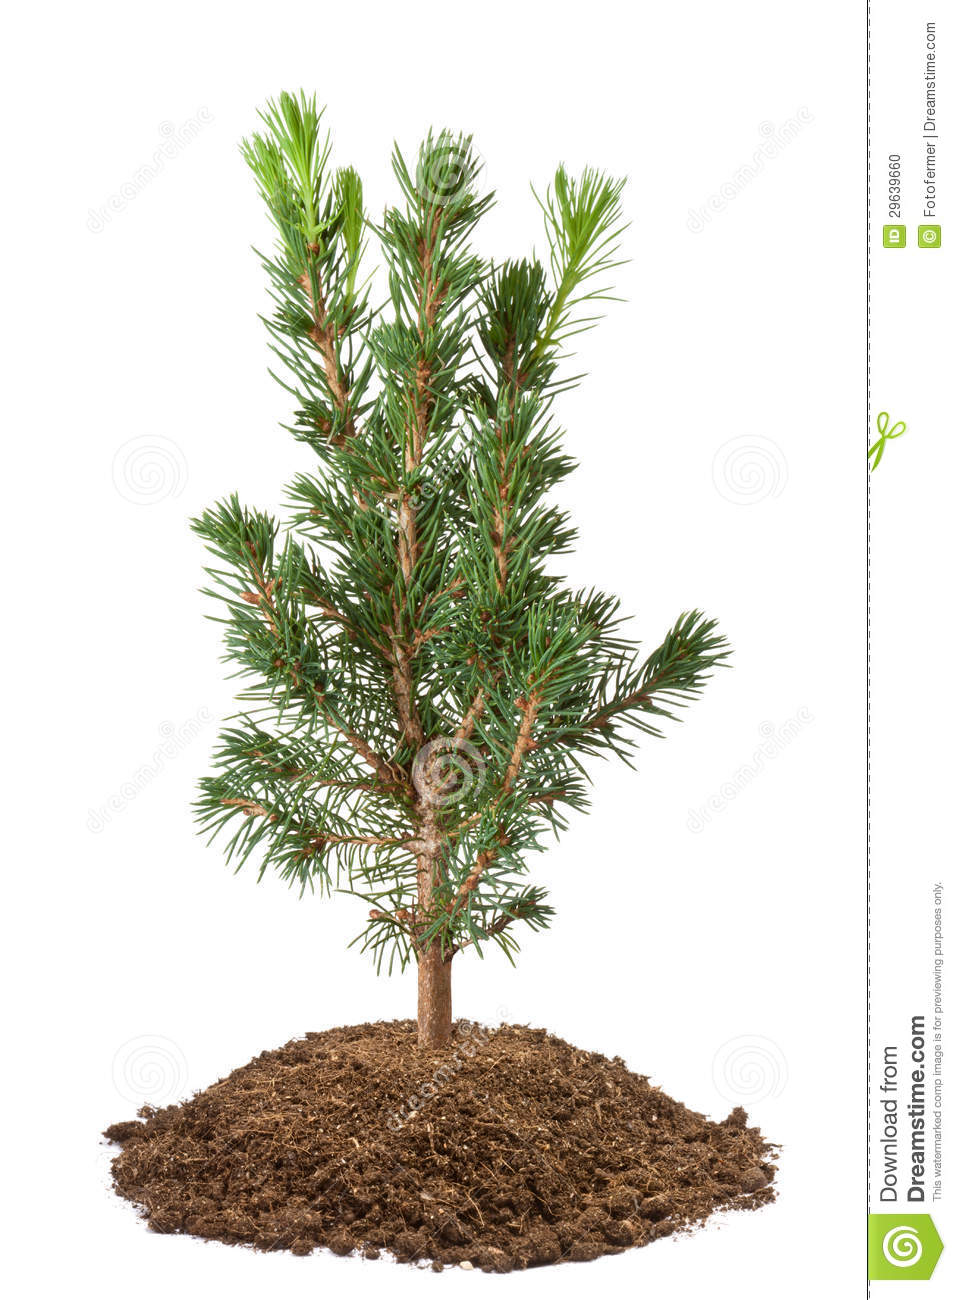 Young Spruce Sapling Stock Photo - Image: 29639660